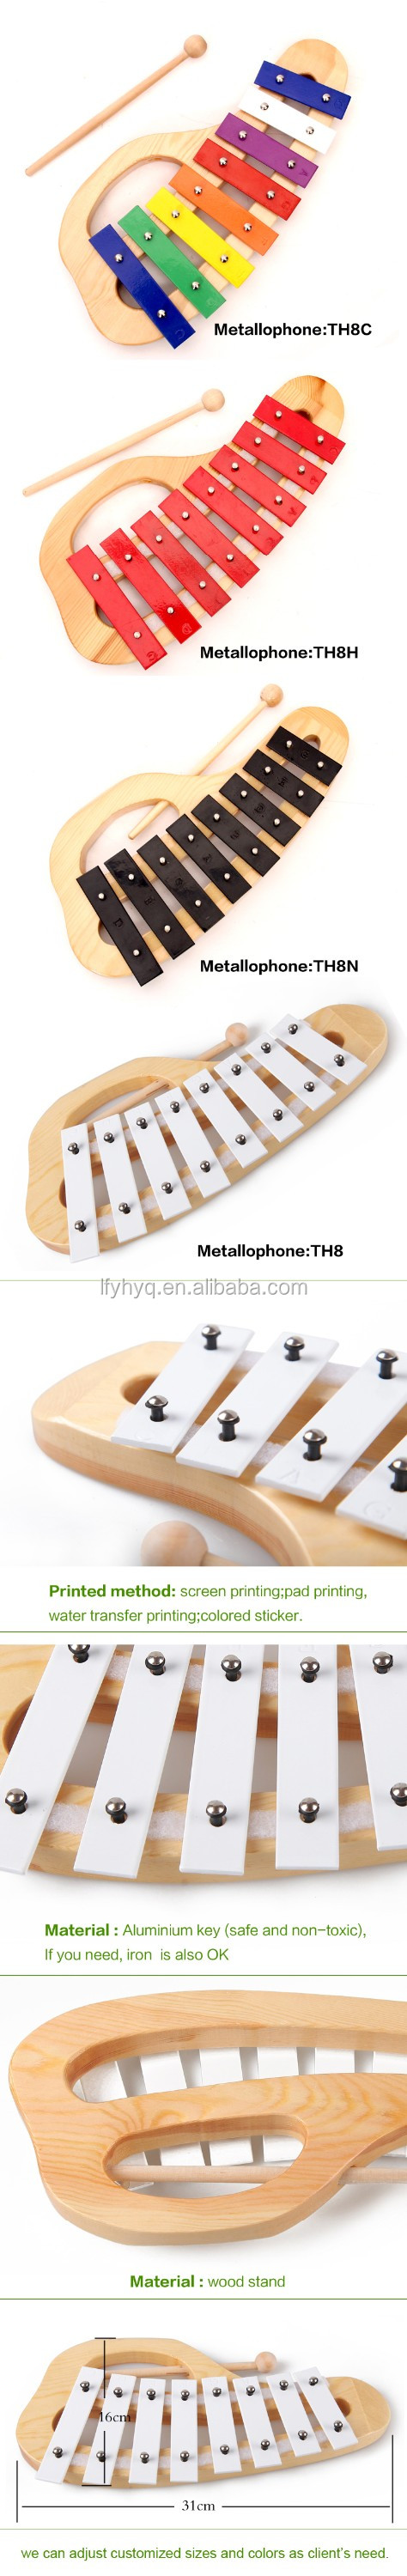 Metal xylophone with wooden stand musical instrument percussion metallophone